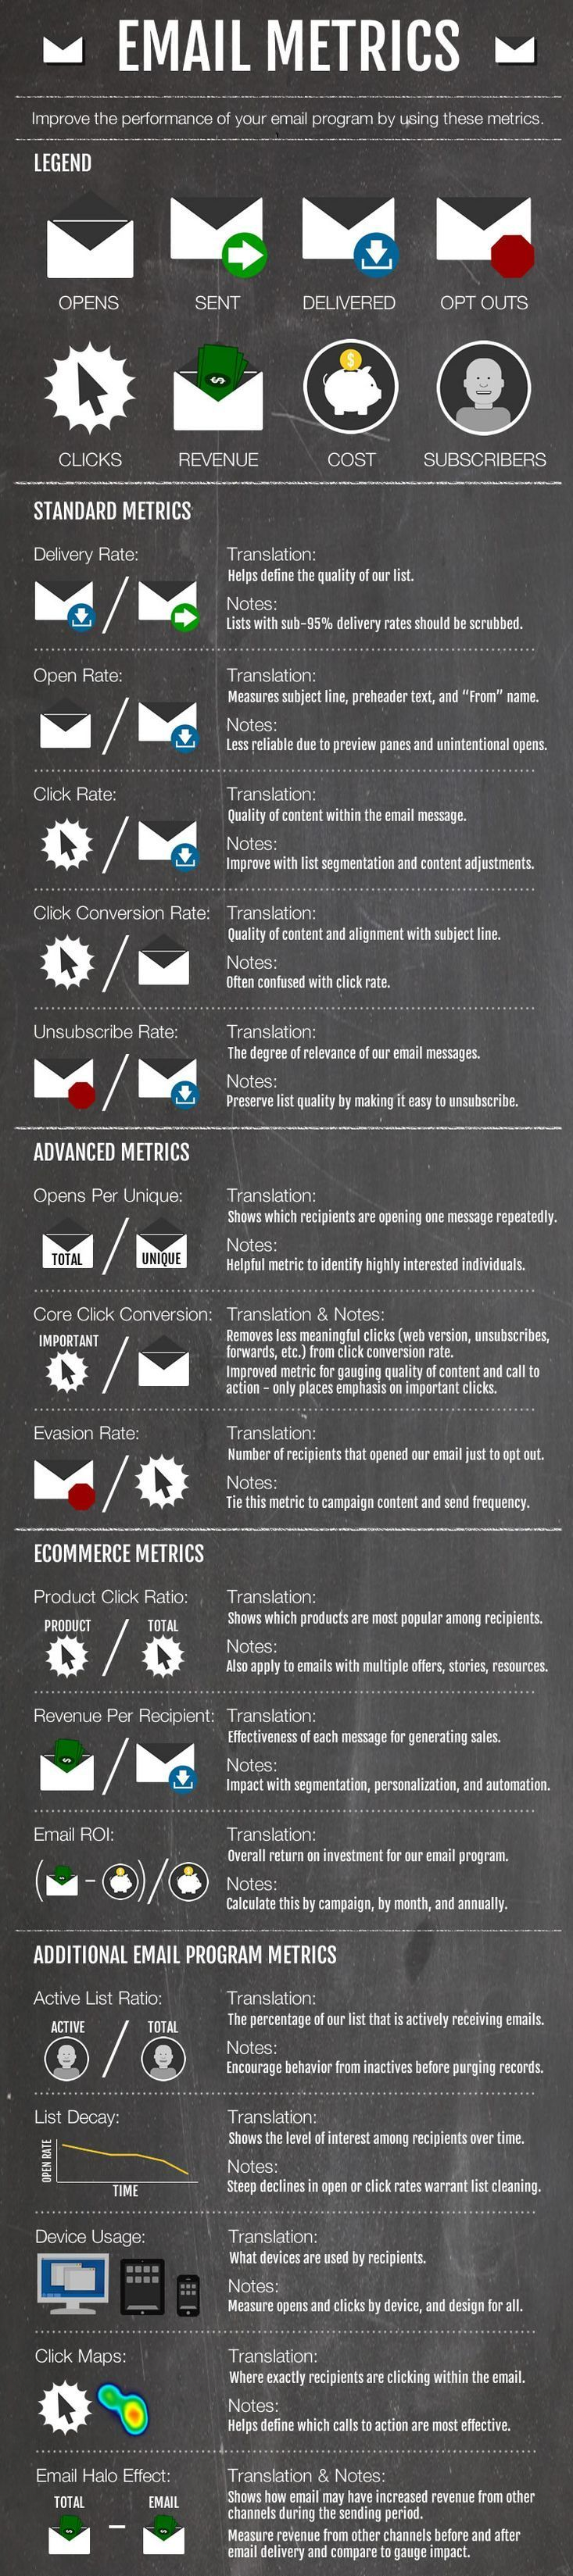 https://social-media-strategy-template.blogspot.com/ #DigitalMedia Email Metrics #emailmarketing #infographic